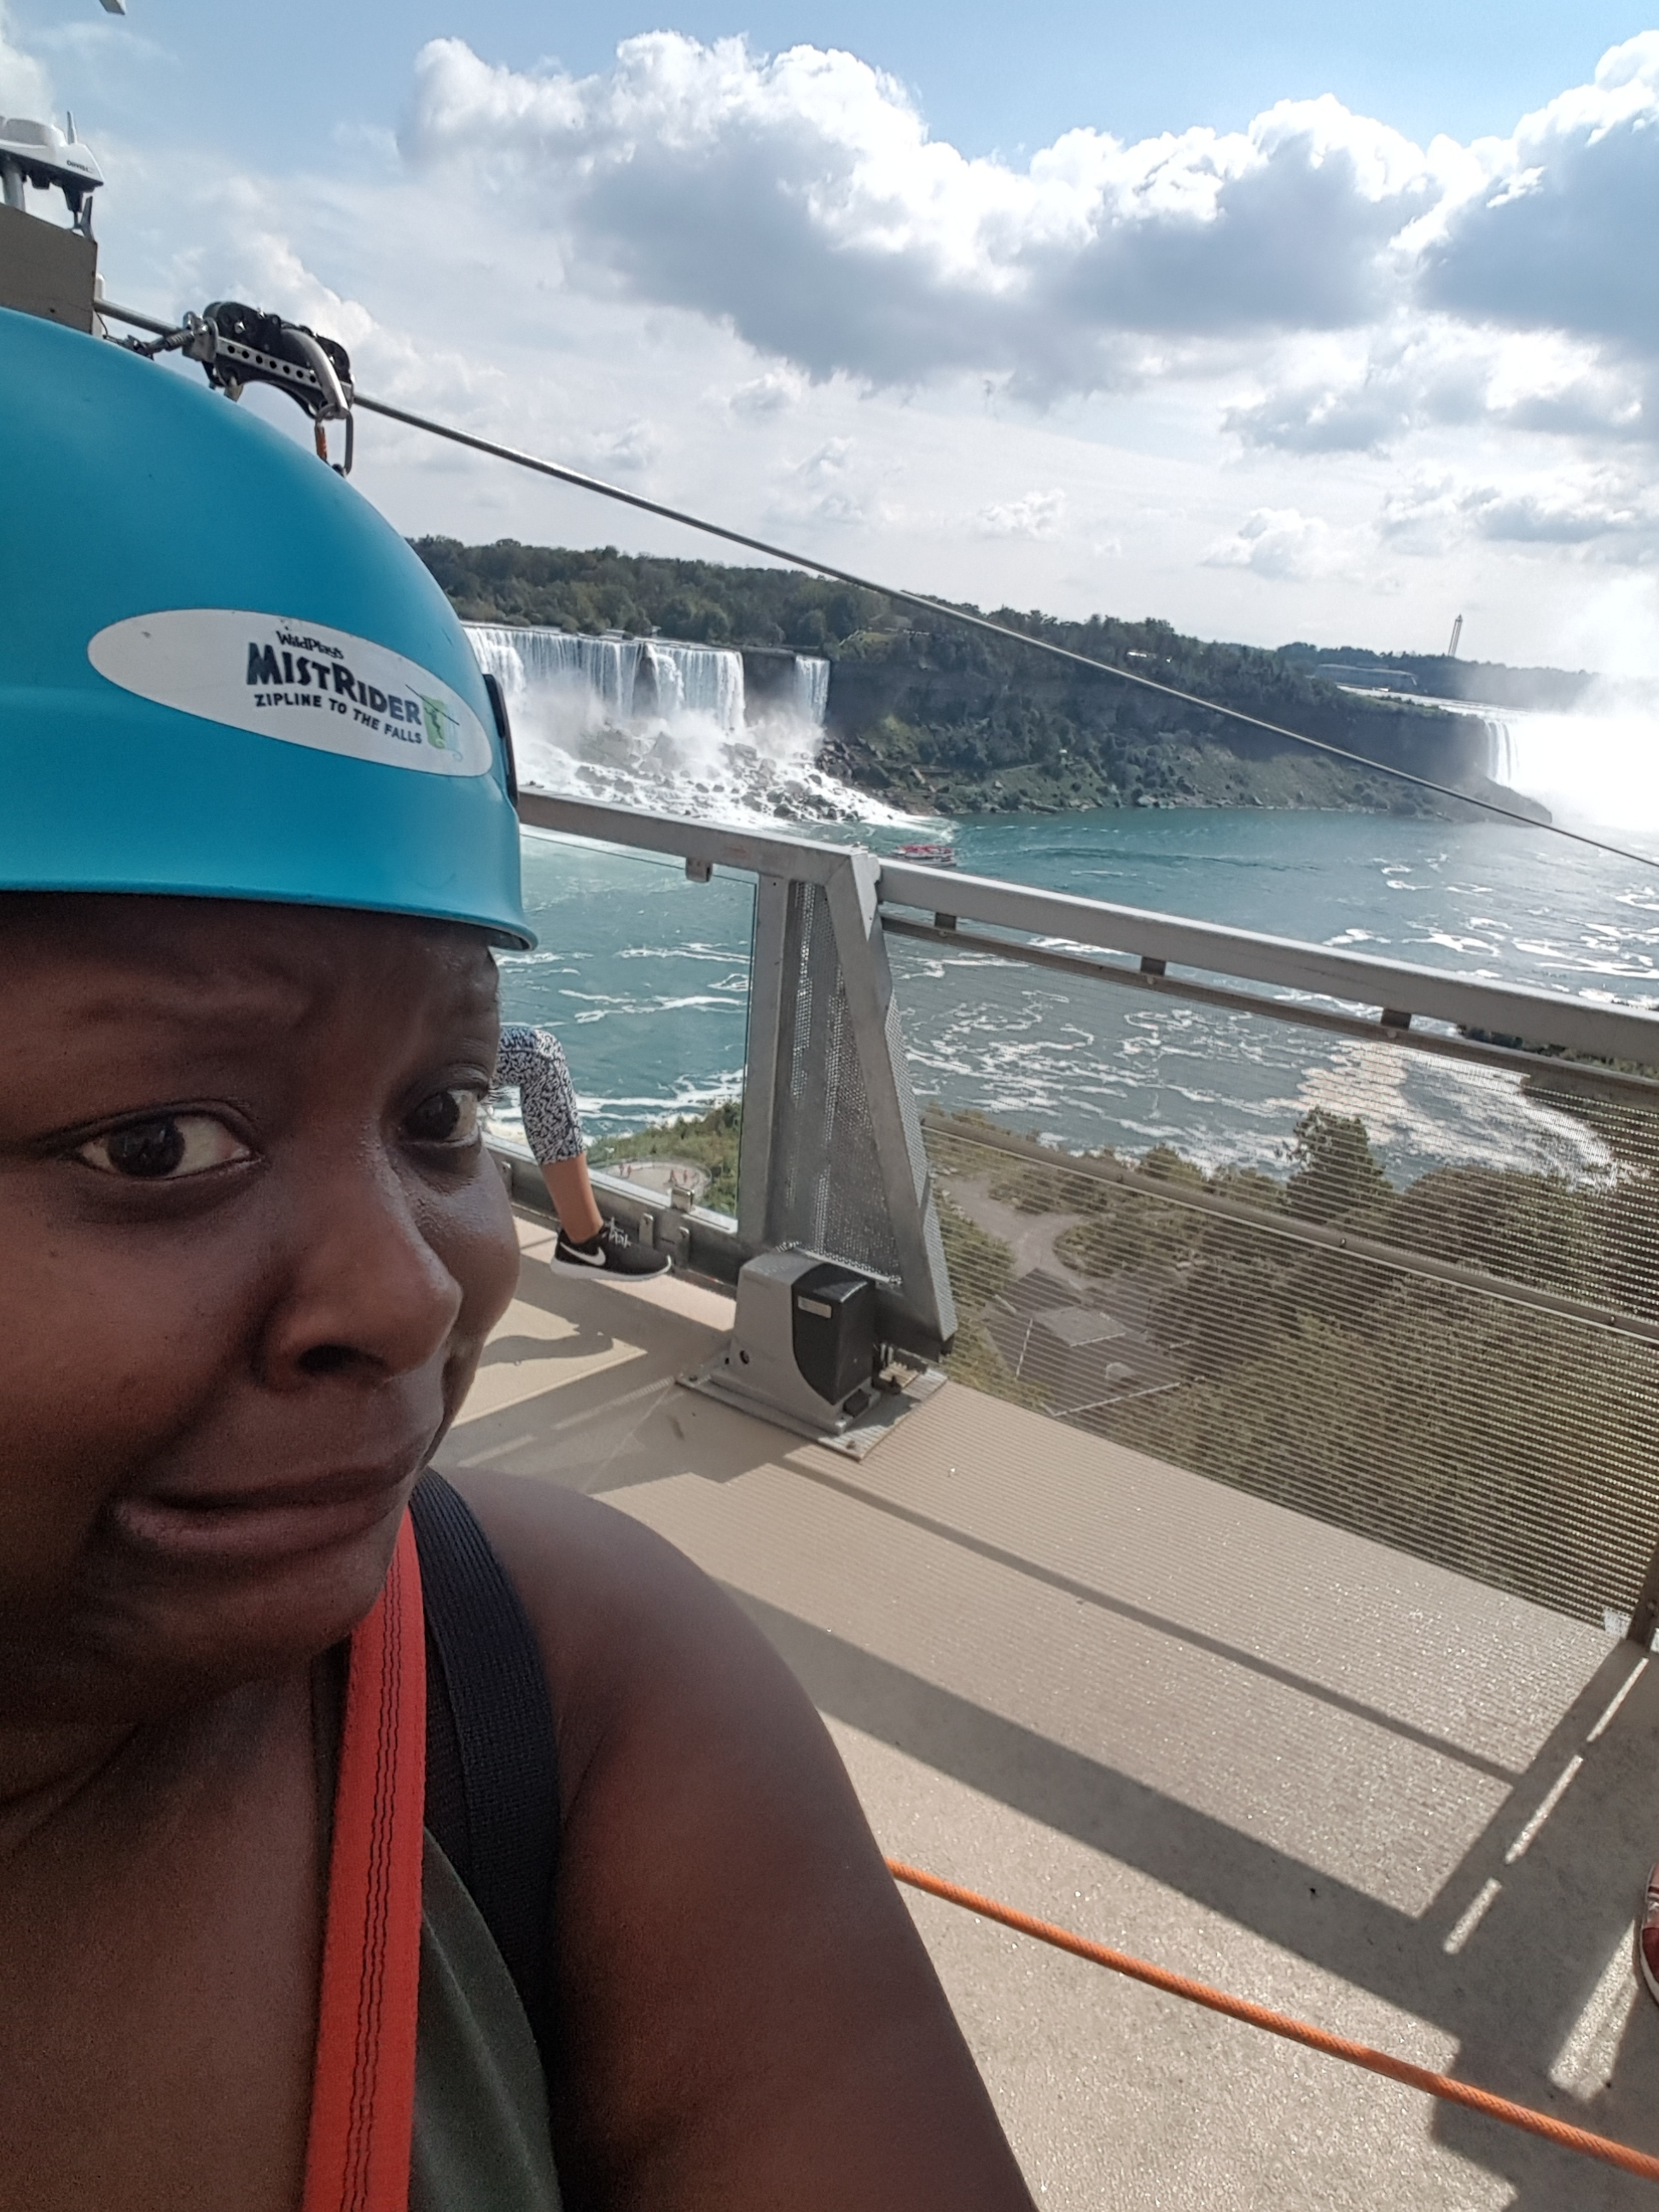 Having second thoughts about this whole zipline thing.